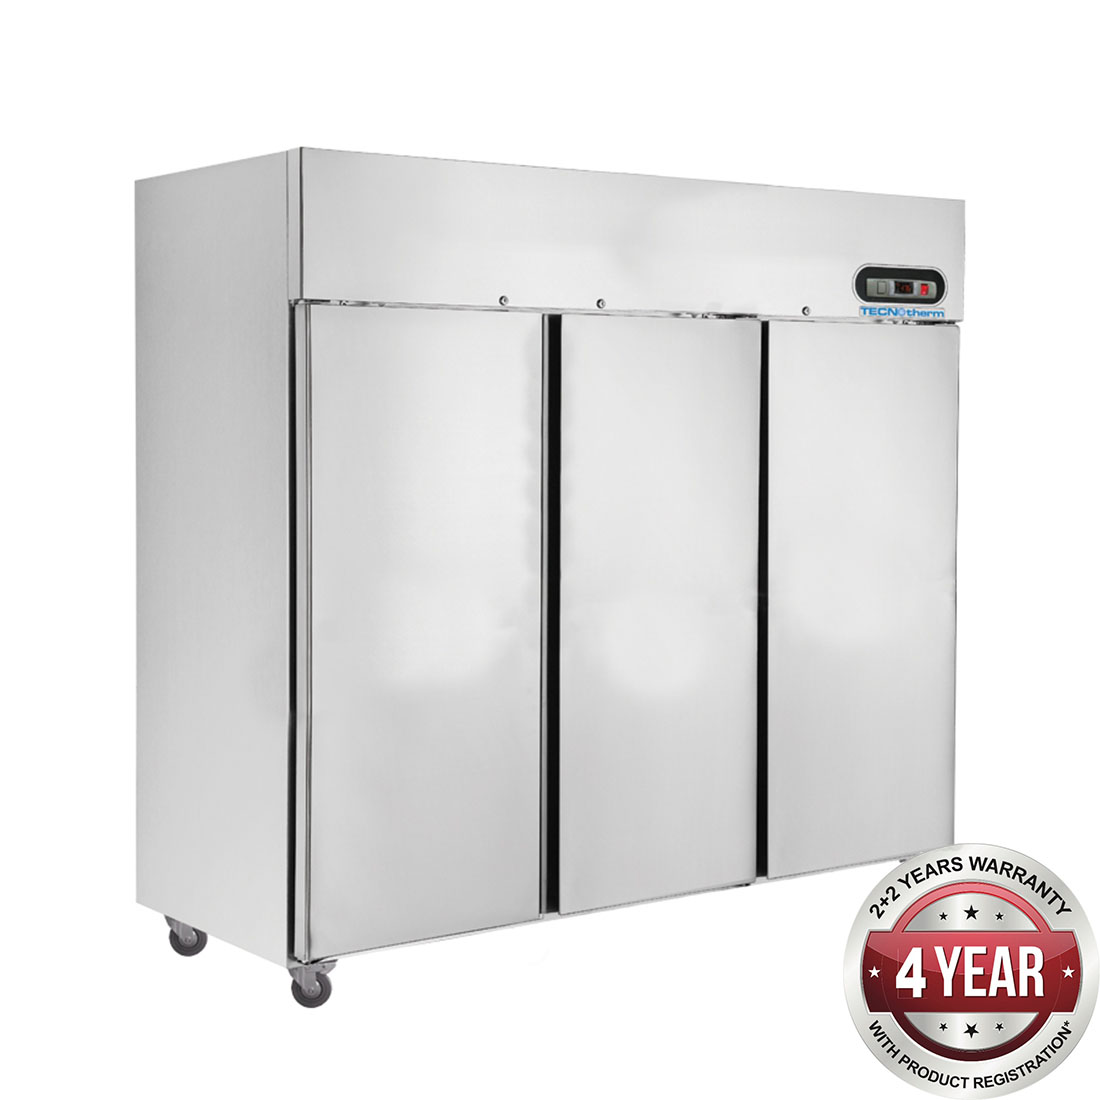 SUF1500 Three Door SS Upright Display Freezer